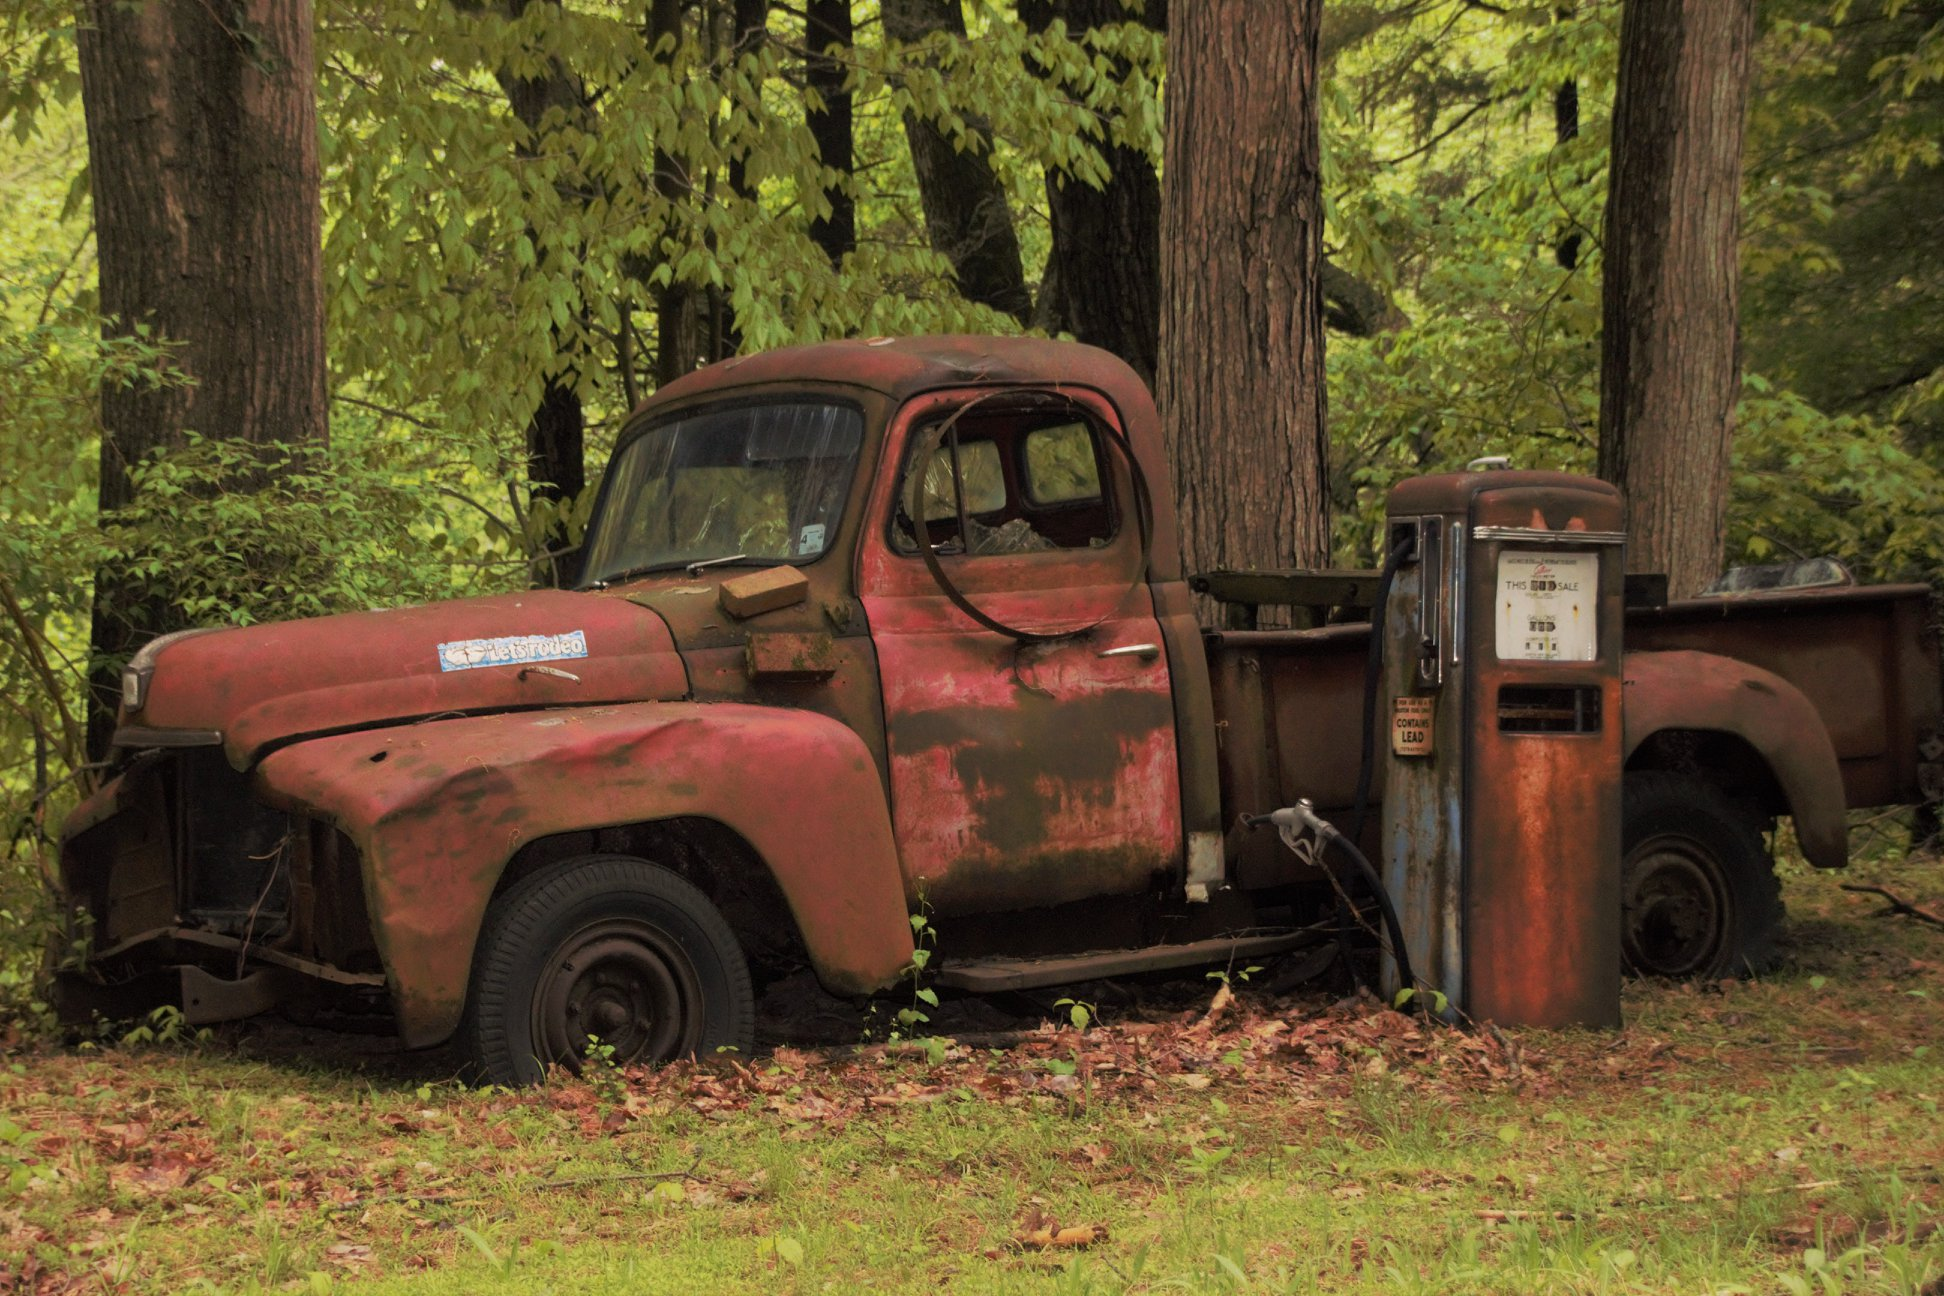 International-L110-Pick-Up-1952-Carversville-USA-4